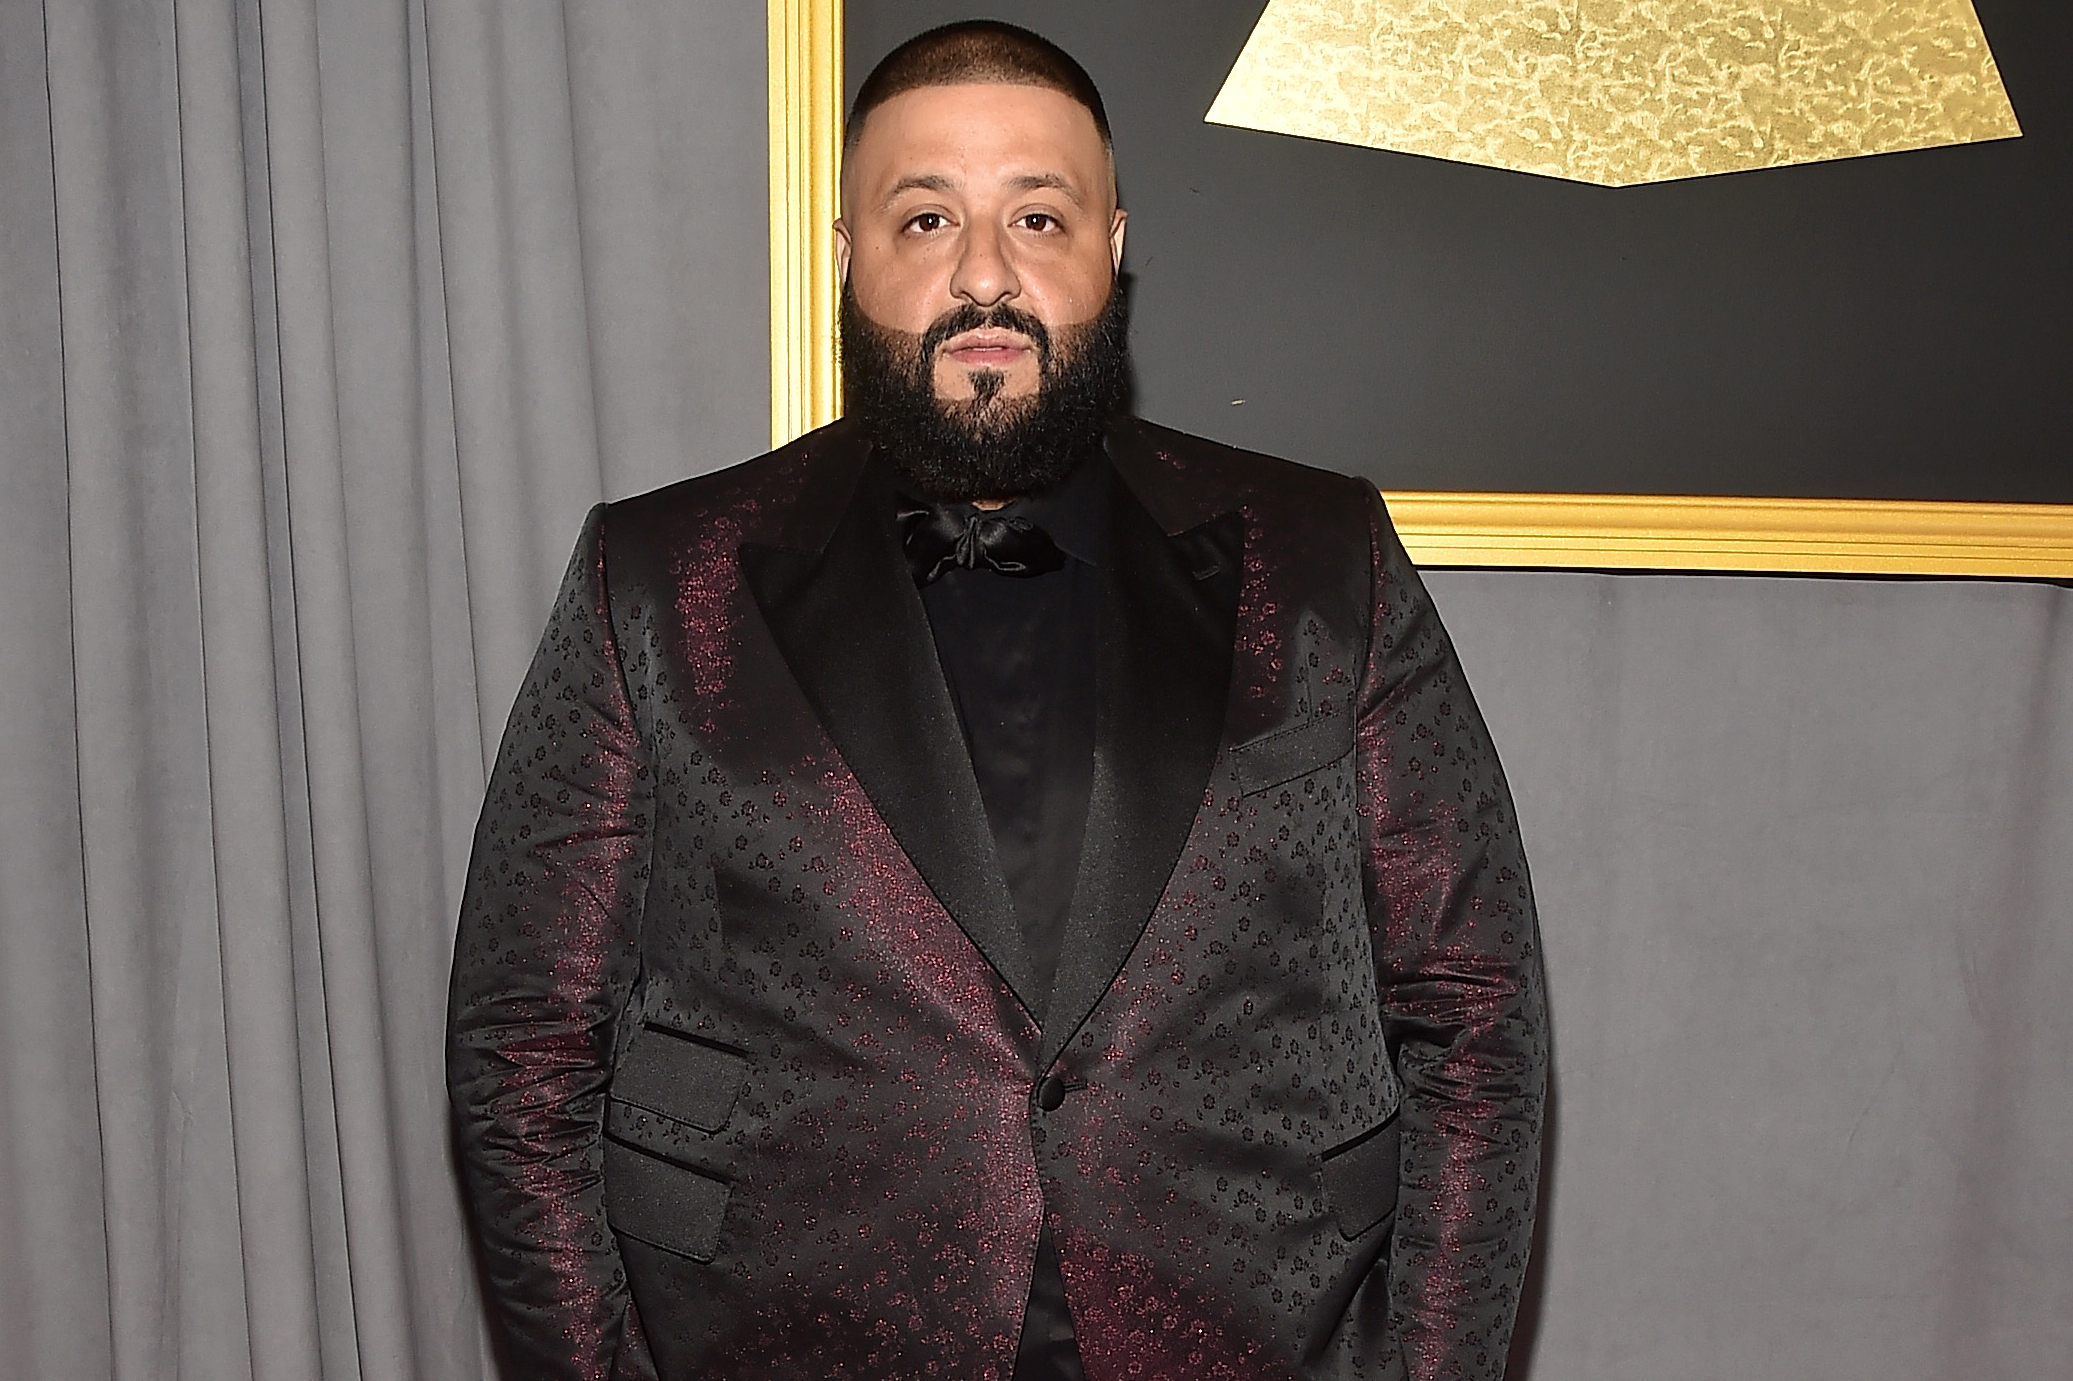 DJ Khaled attends the 59th GRAMMY Awards at STAPLES Center, on Feb. 12, 2017 in Los Angeles.